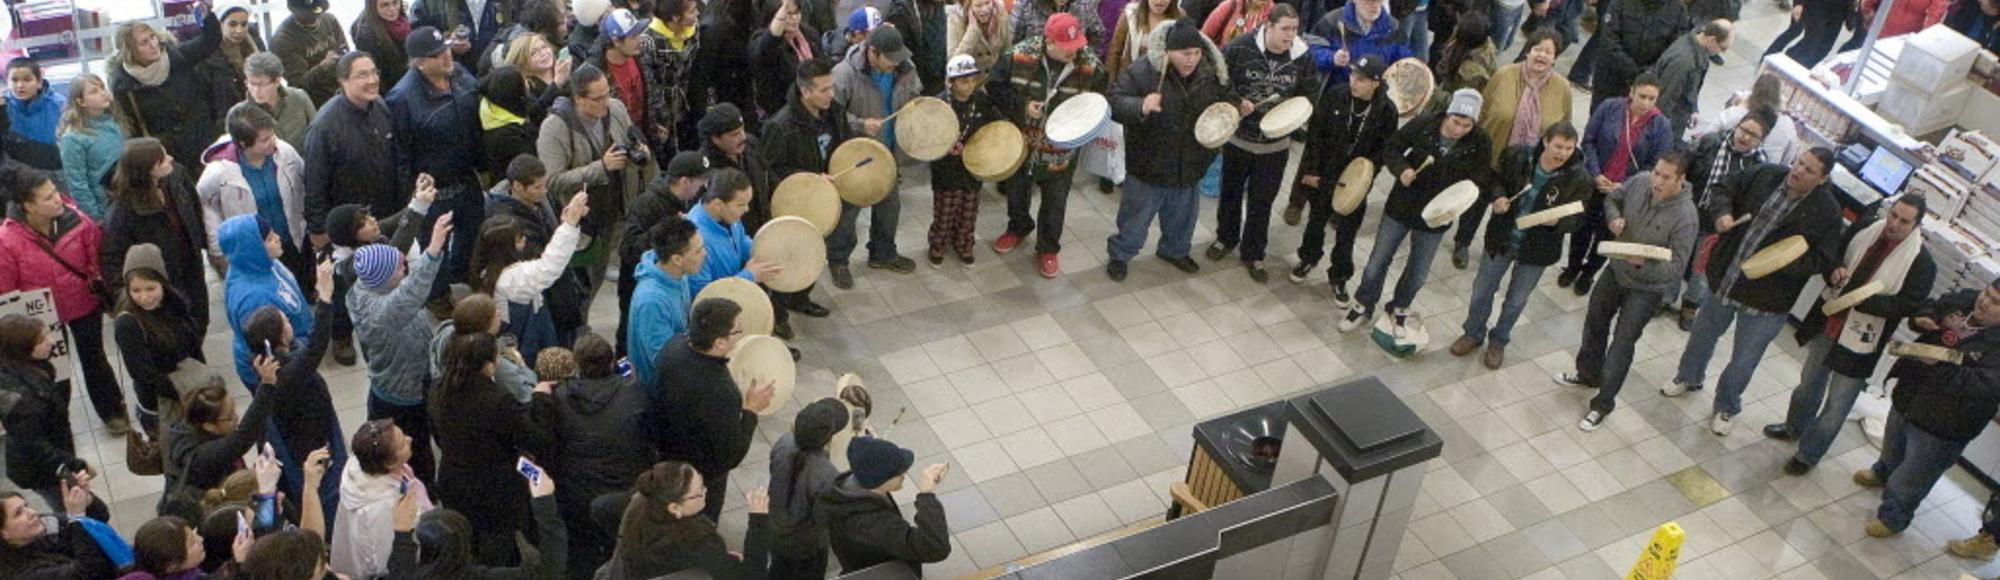 What Exactly Is Idle No More?